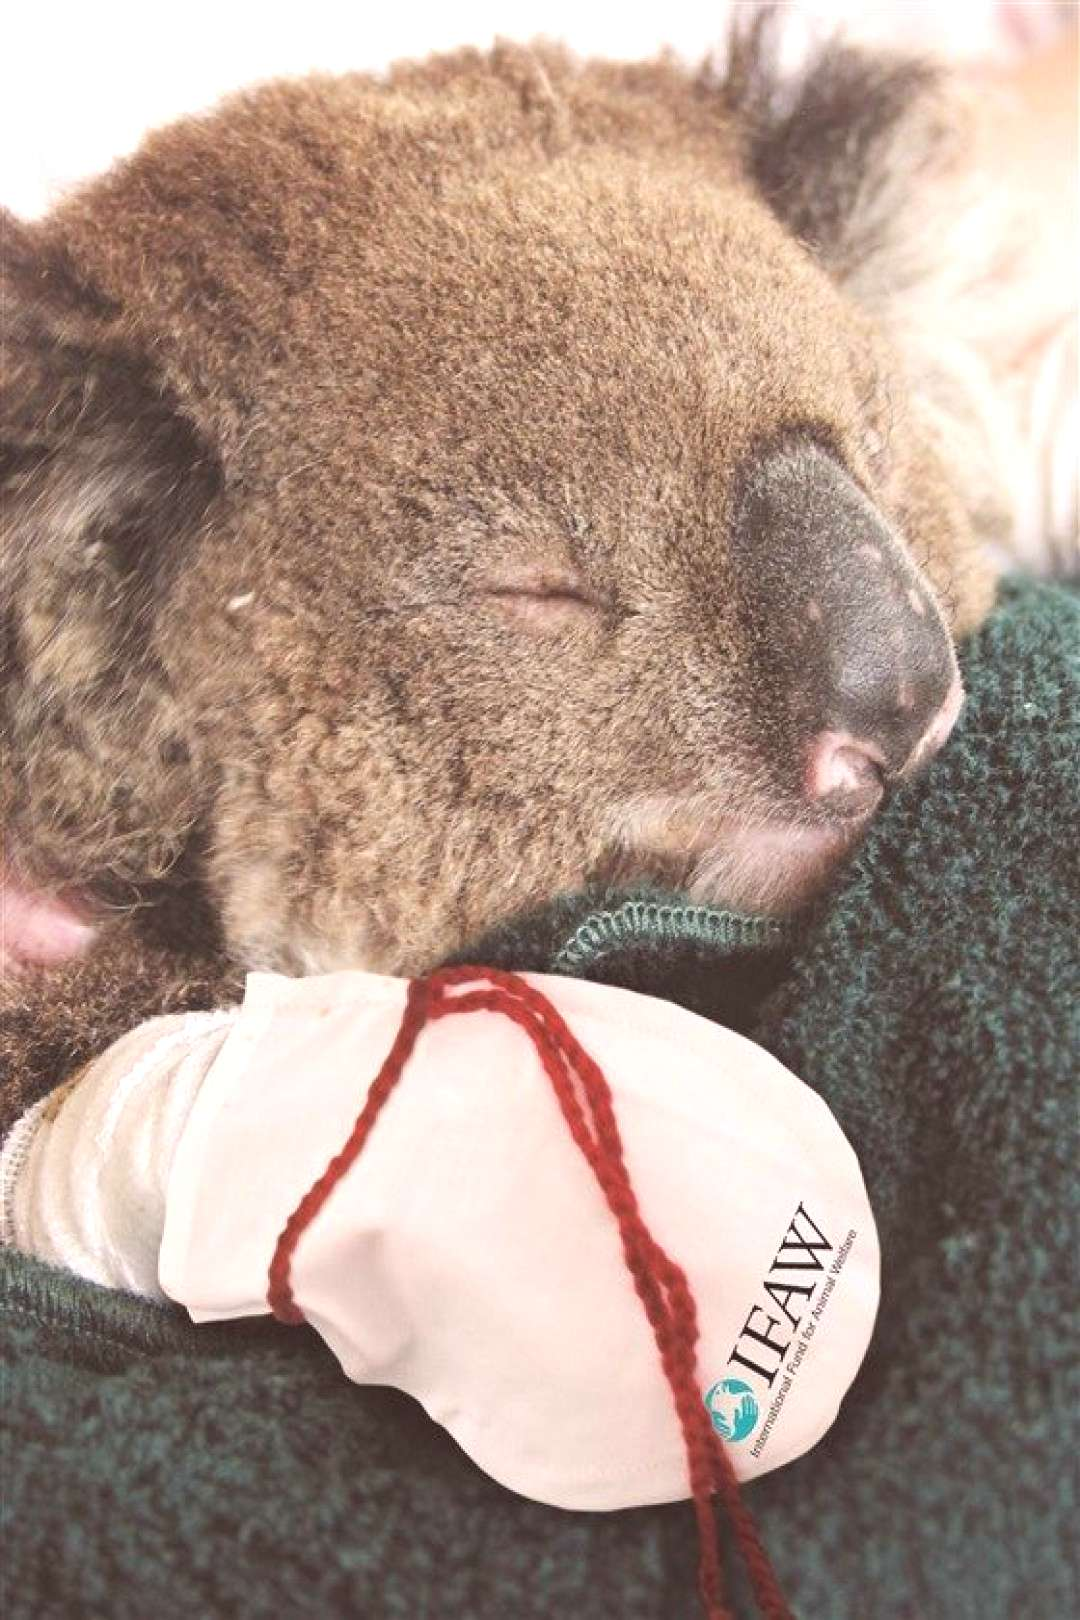 Campaign to knit mittens for injured koalas successful, adorable - -